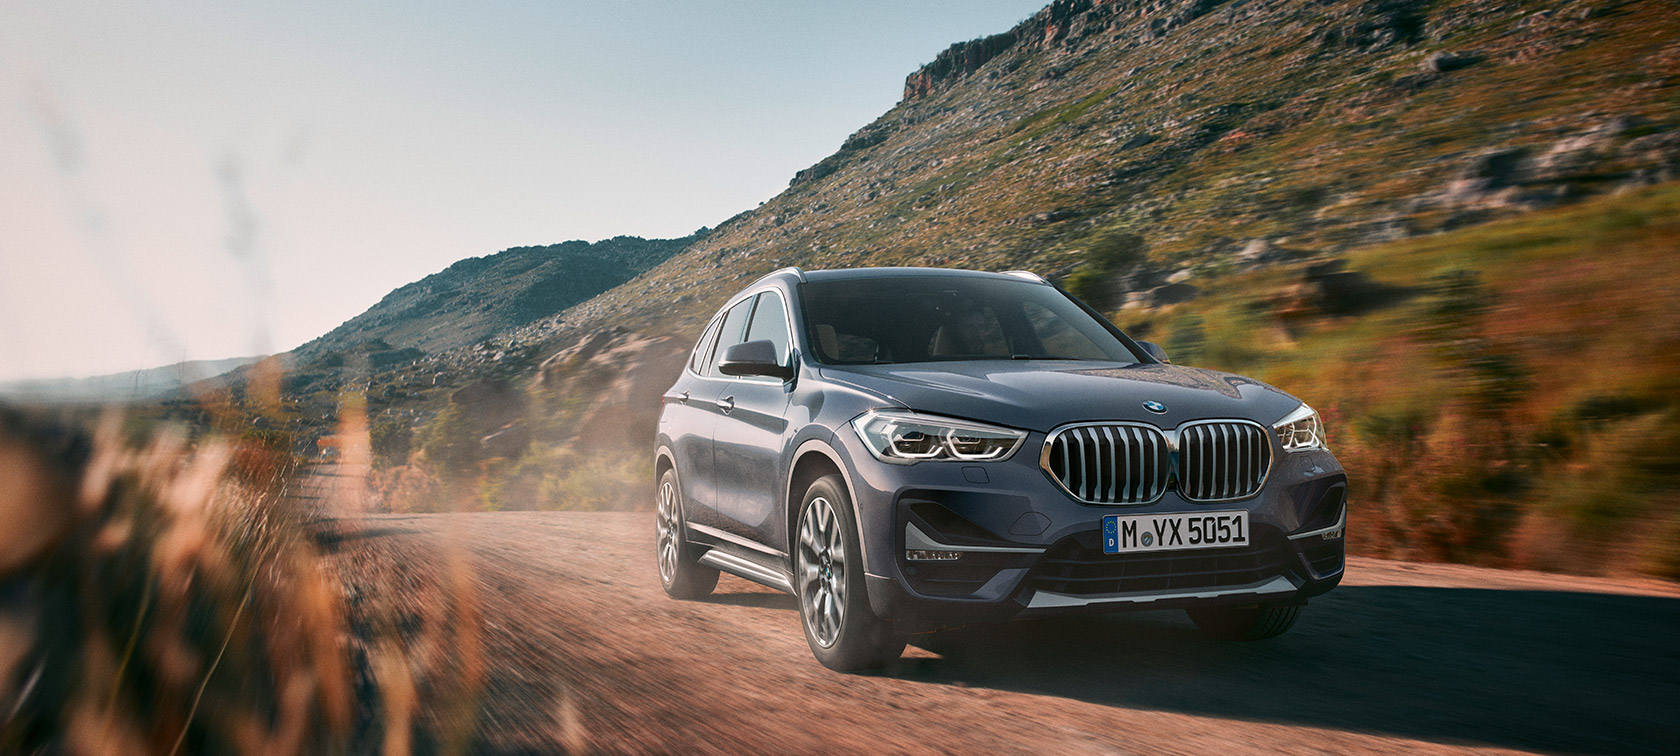 BMW X1, three-quarter front view driving in front of mountain scenery.